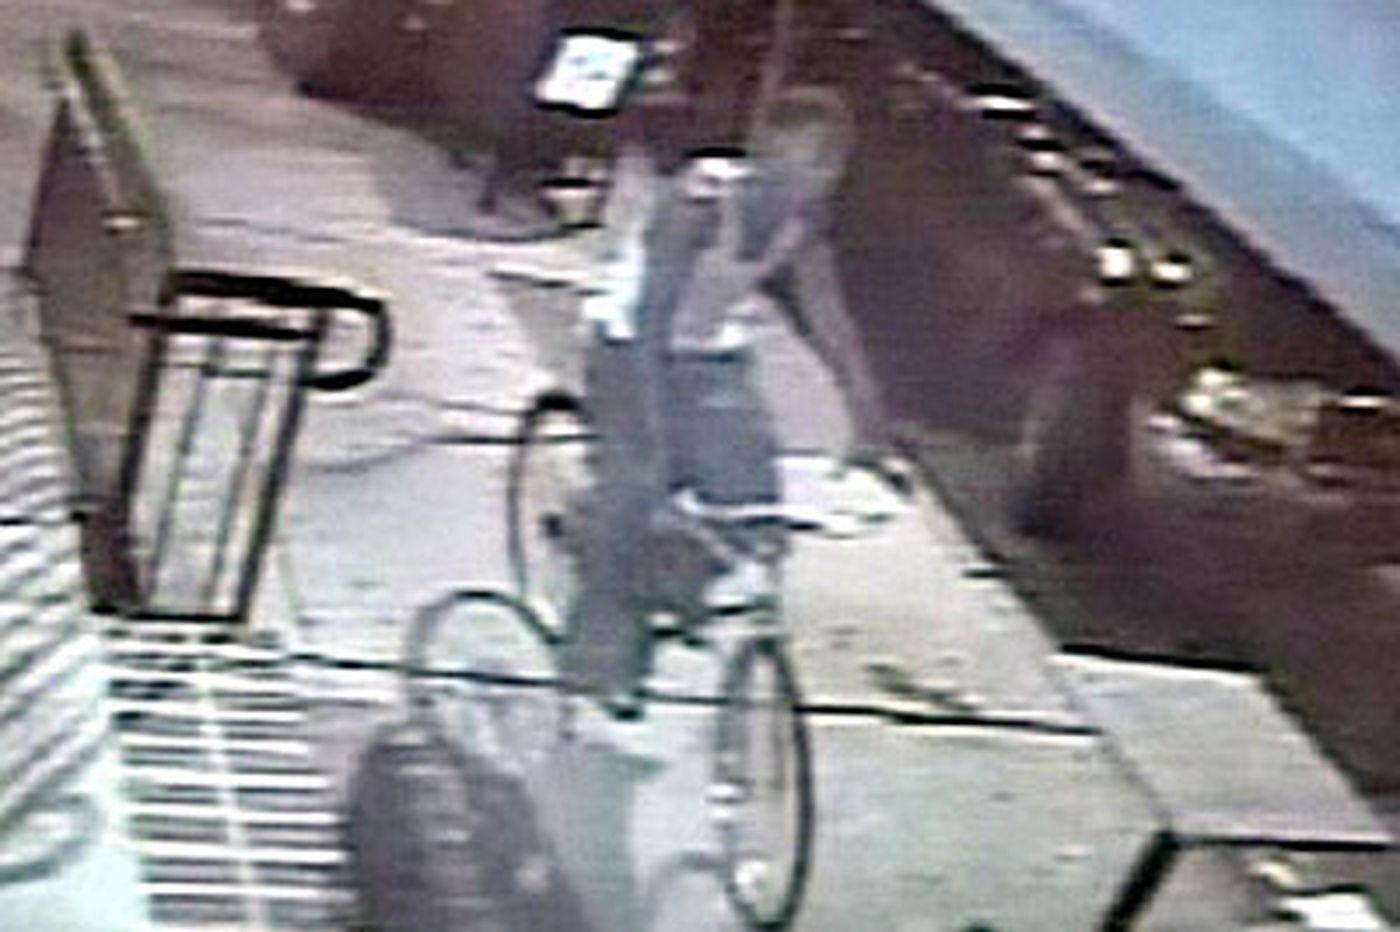 'Person of interest' was riding a bike